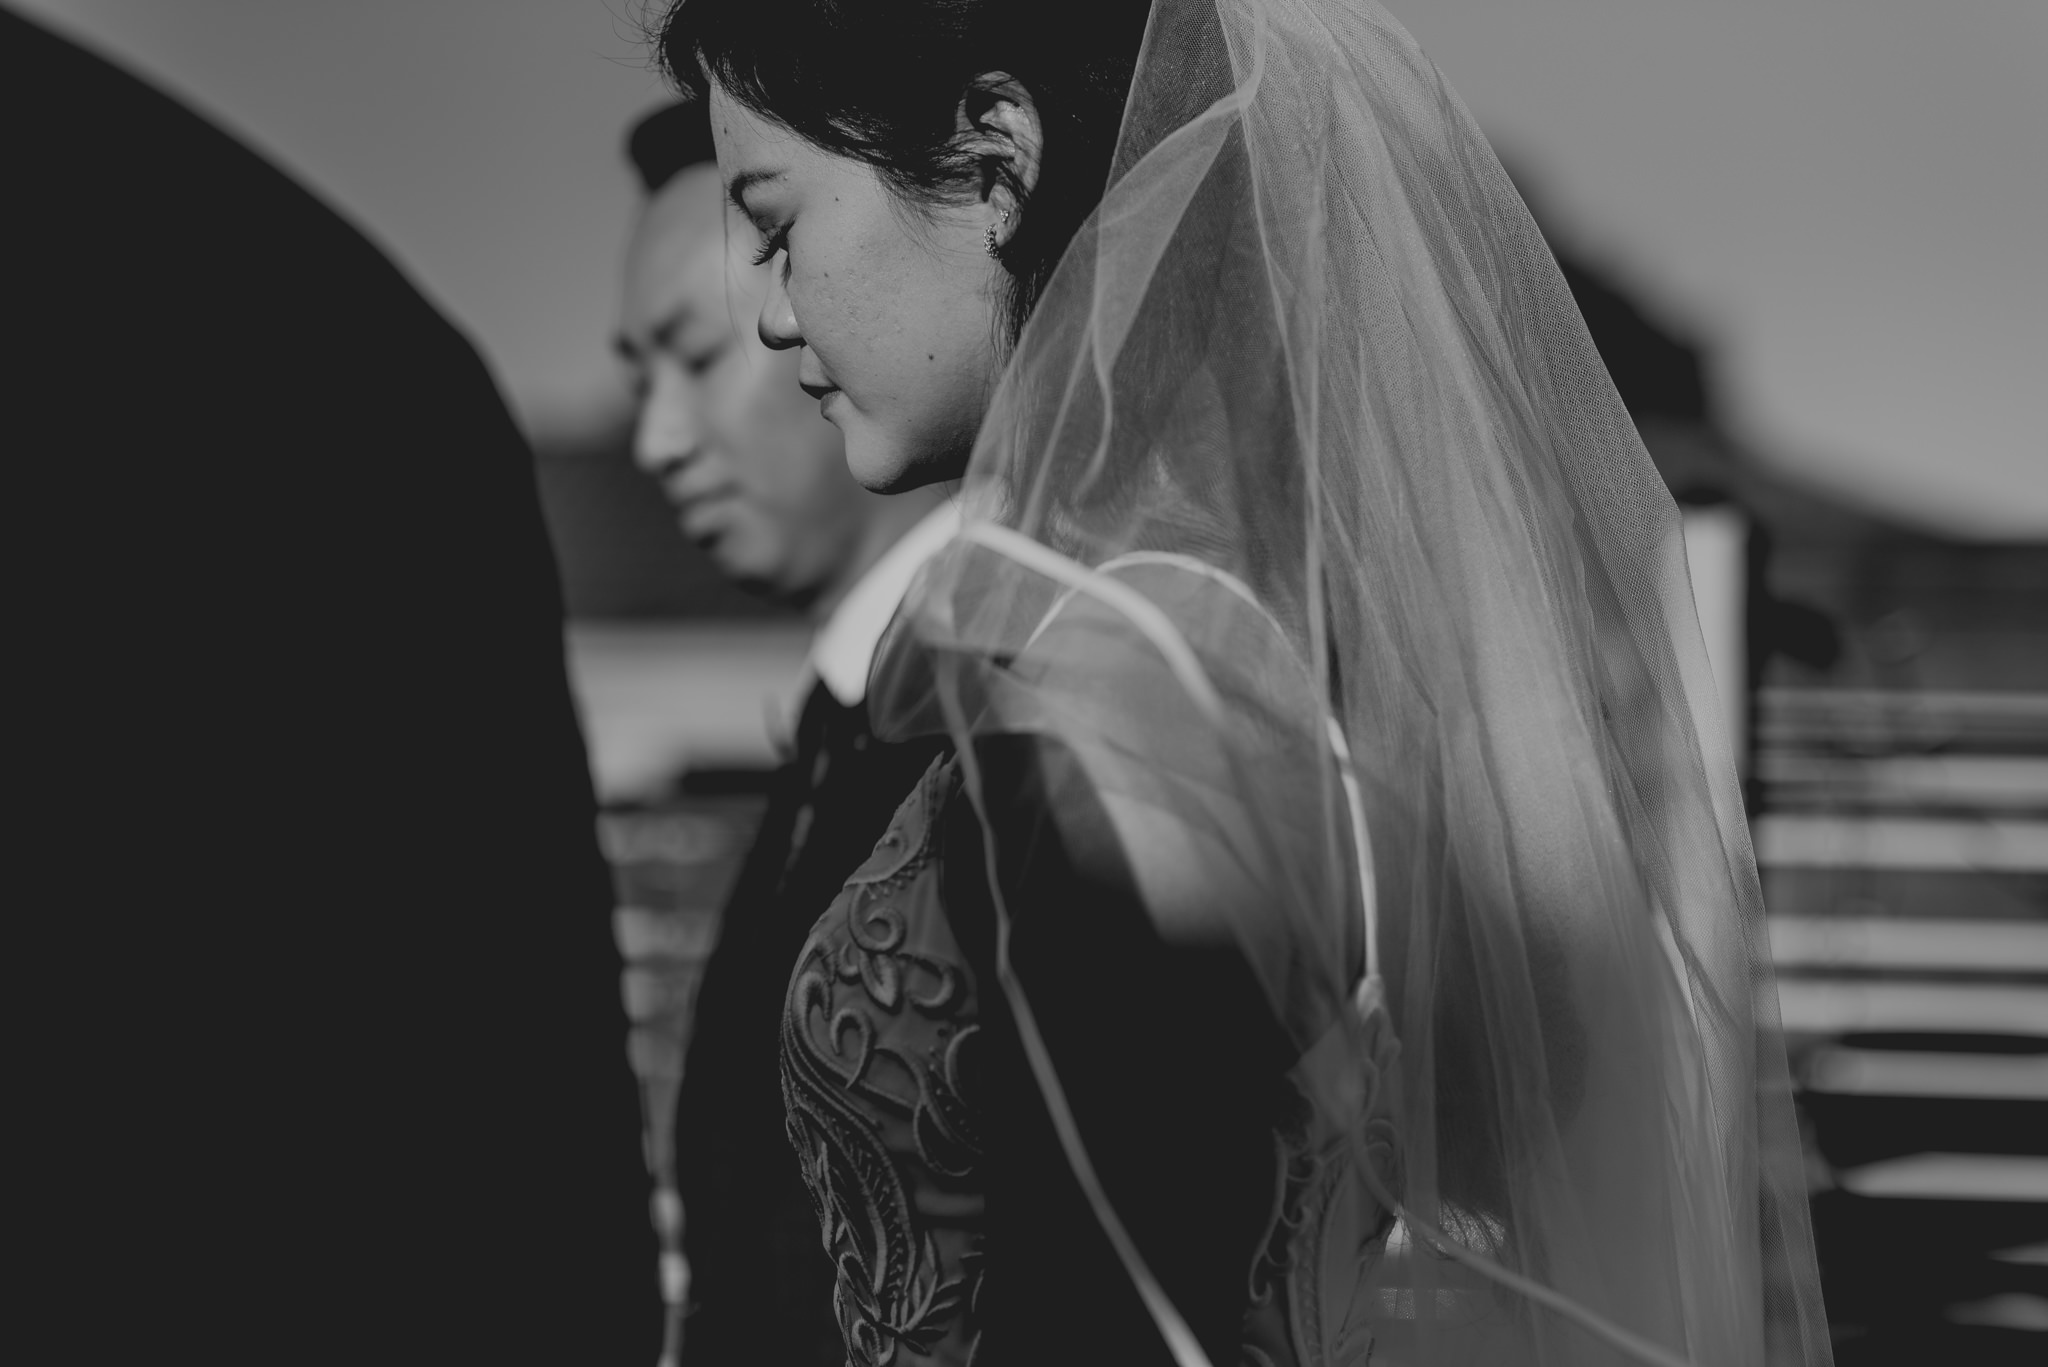 Portrait of a bride closing her eyes during a wedding ceremony